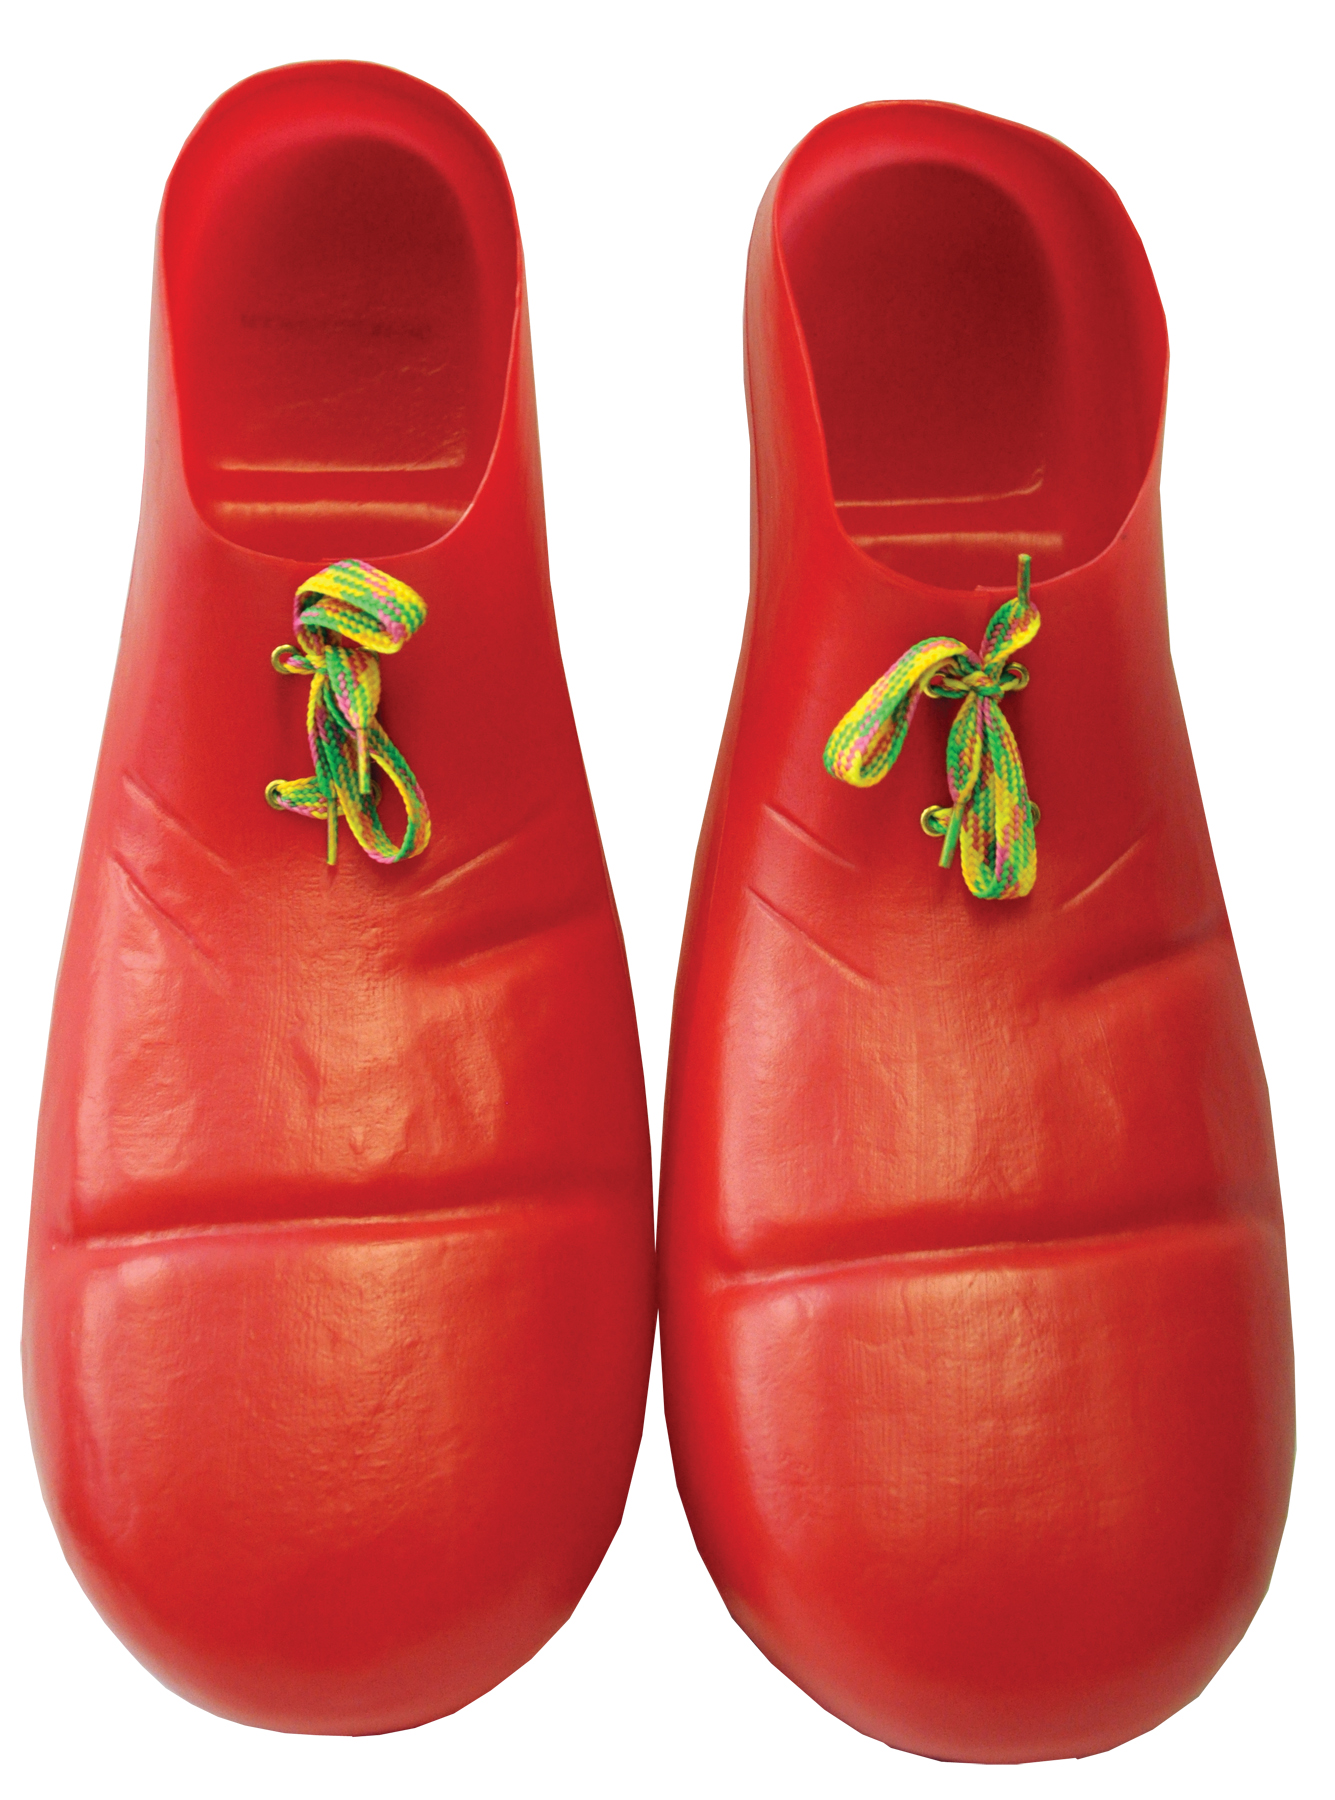 Red Plastic Adult Clown Shoes